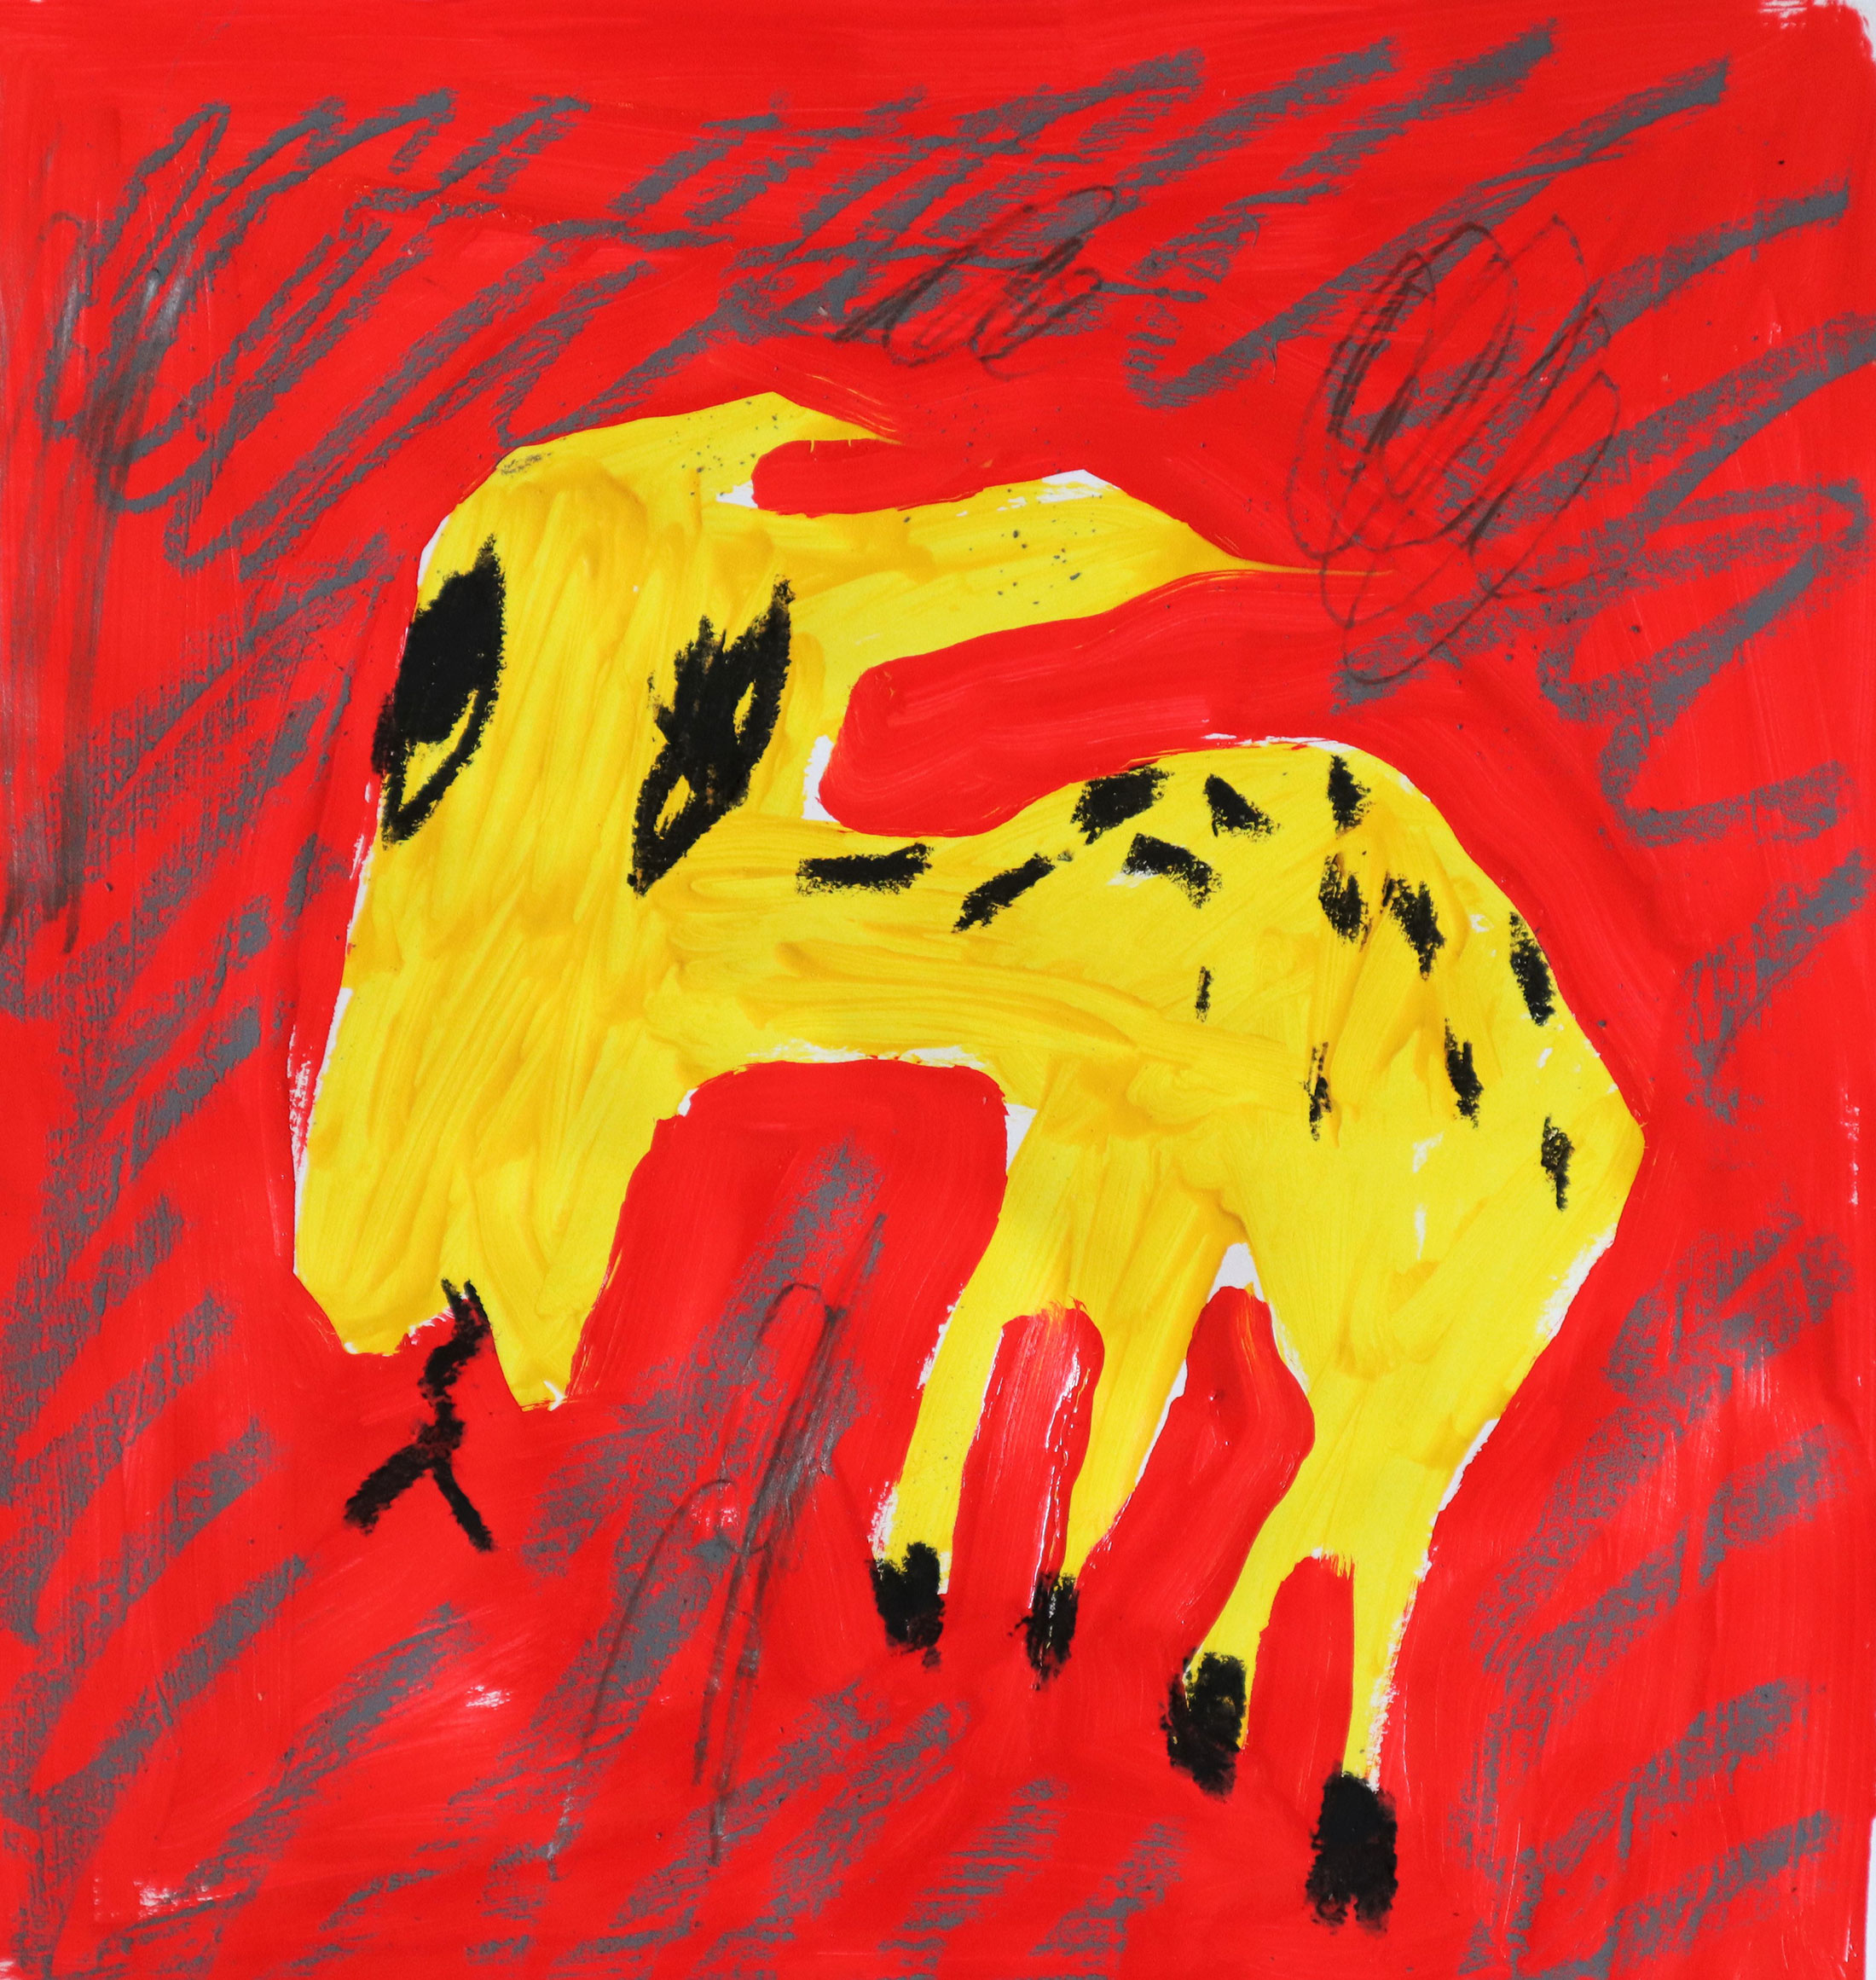 domi gratz, young female artist, contemporary original art, naive, childlike, painted animal, color, red, yellow